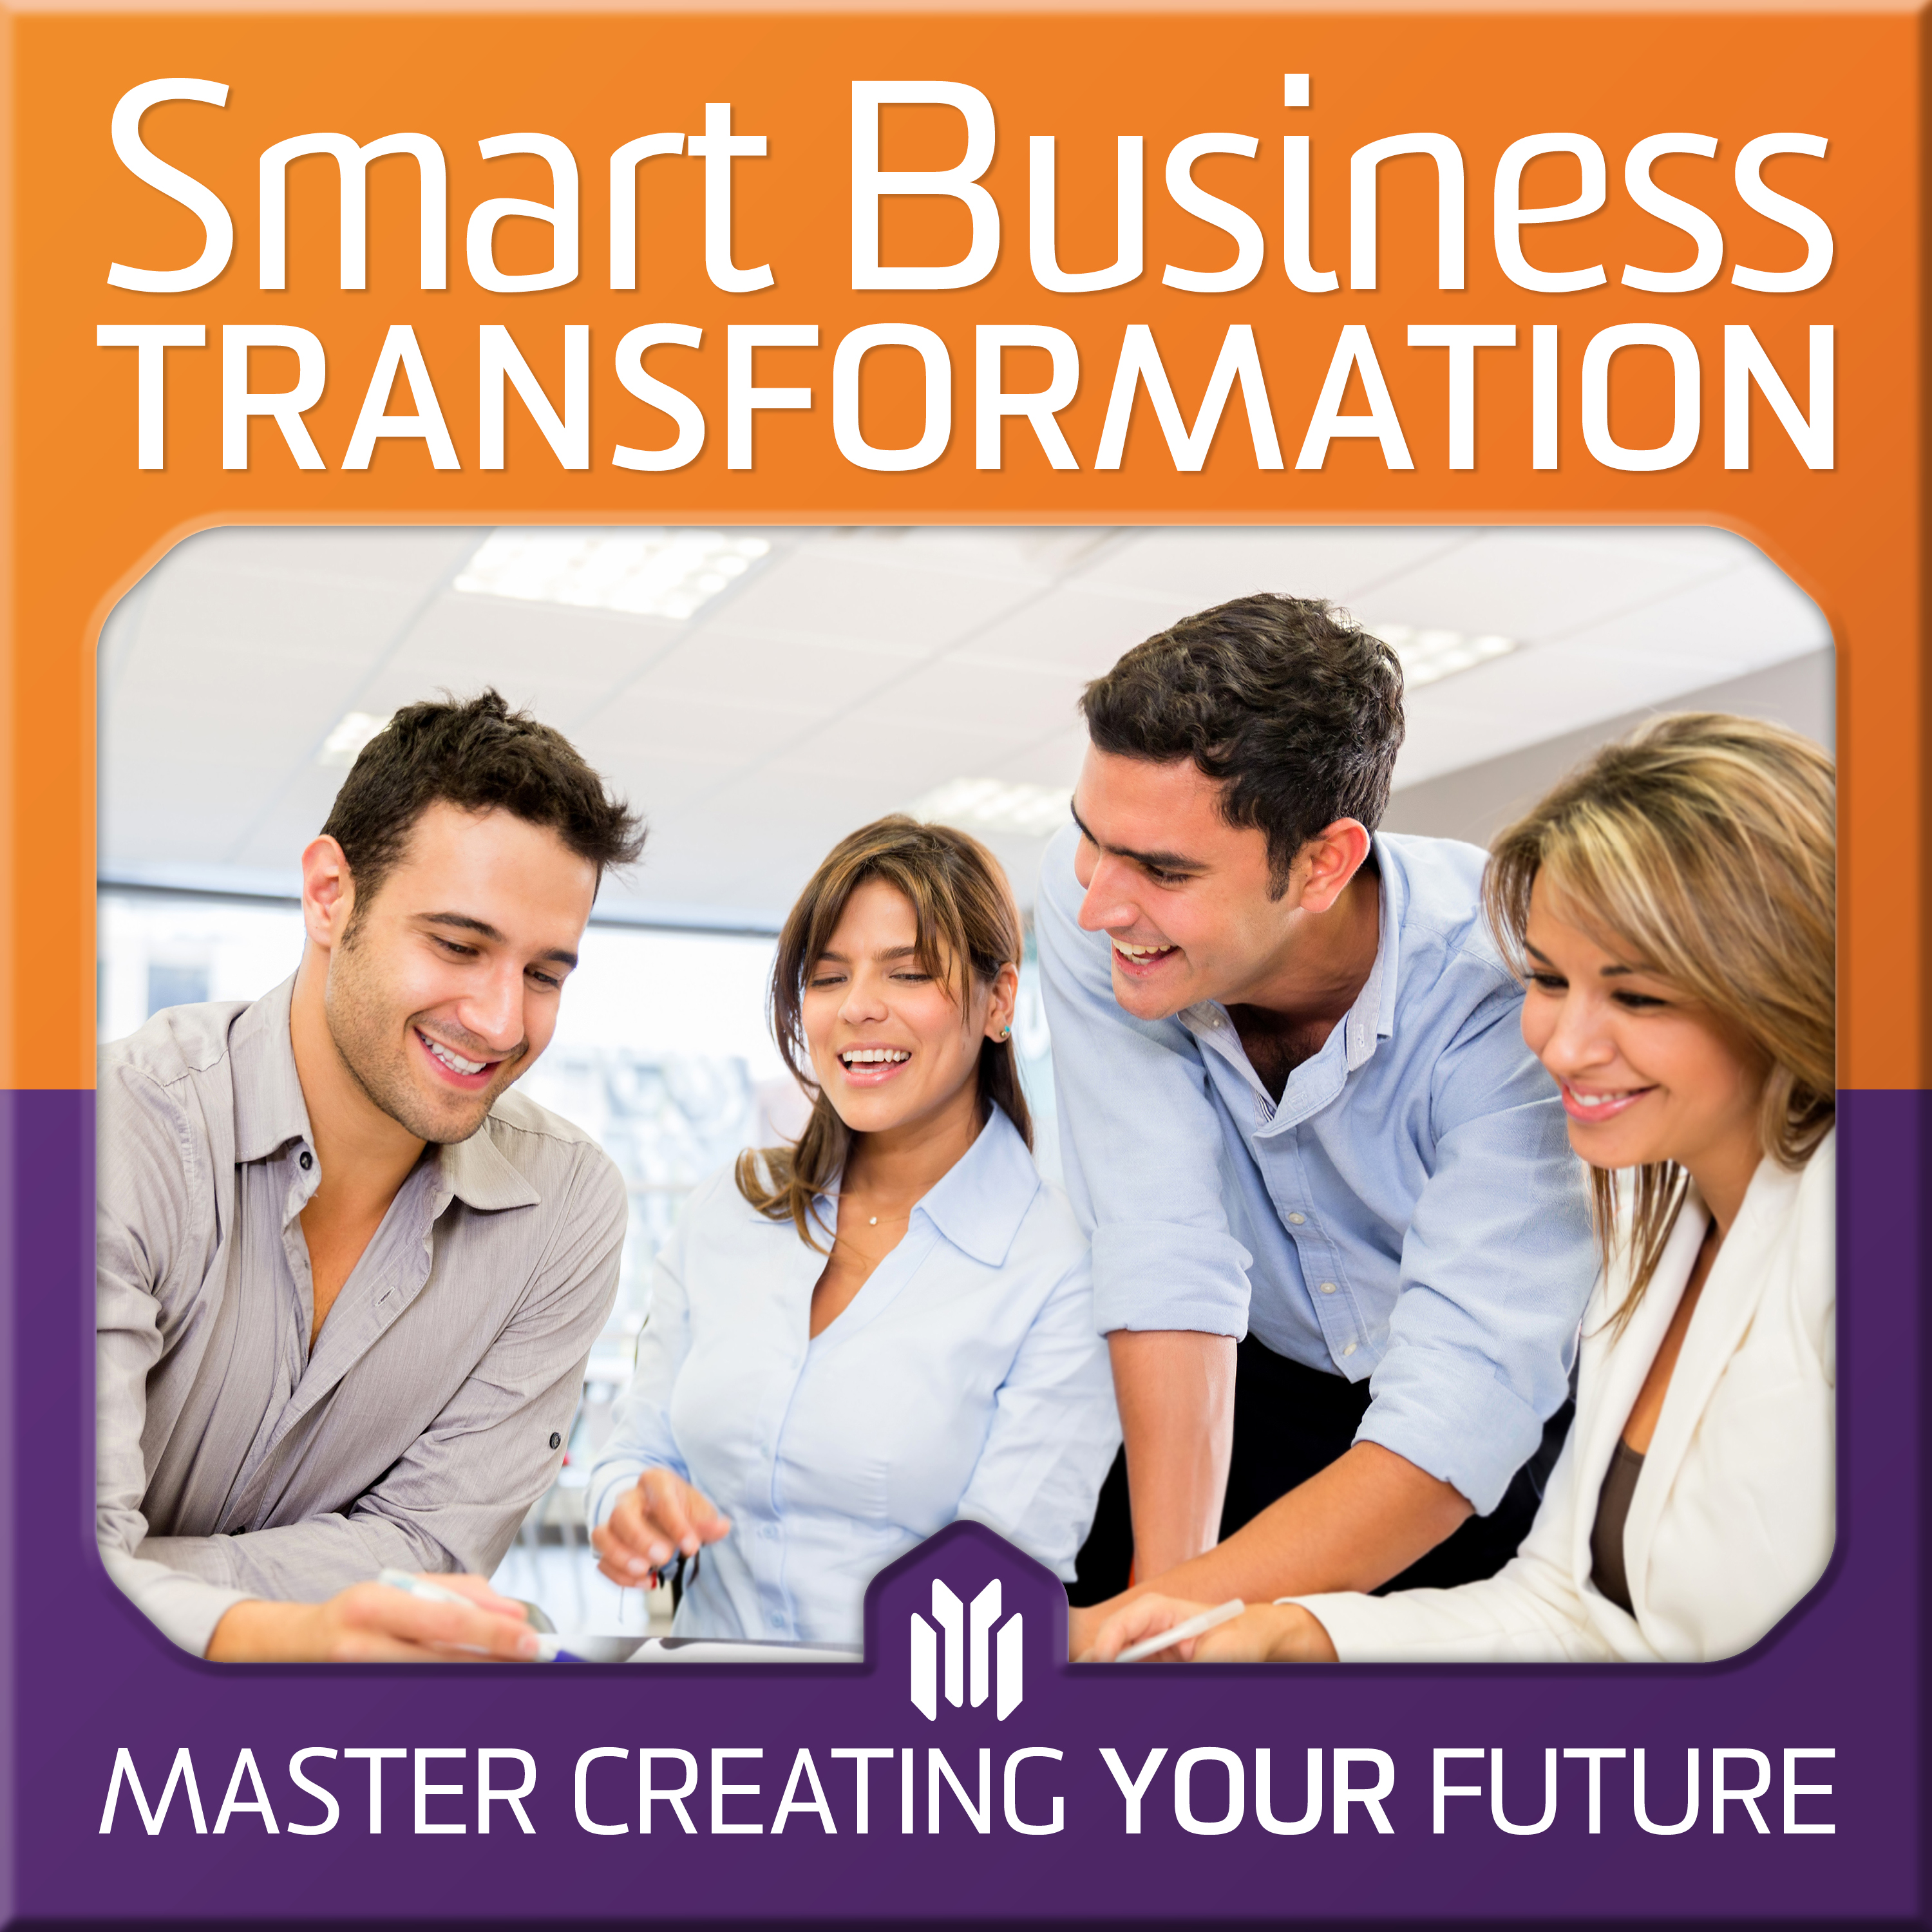 Smart Business Transformation